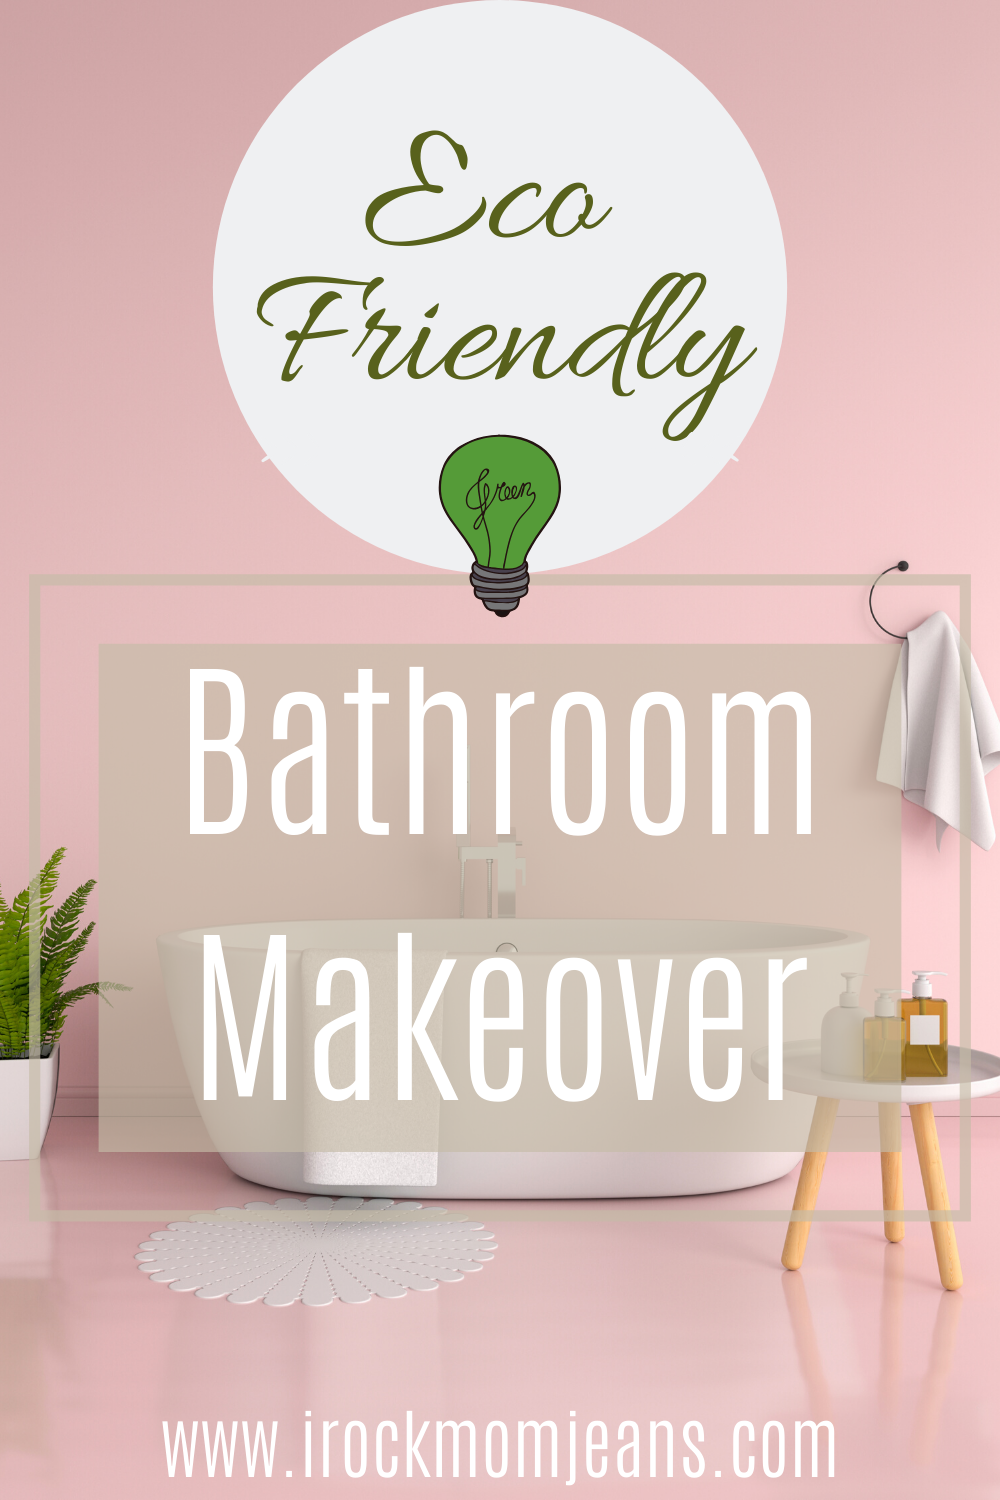 Making changes to our bathrooms can be easily done! By eliminating plastic and harmful products, we can have a beautiful green bathroom that's great for our health and our environment. This article discusses products and solutions. #gogreen #bathroom #bathroomideas #bathroomdecor #bathroomdesign #bathroomrenovation #bathroomcleaning #ecofriendly #ecofriendlyliving #homeliving